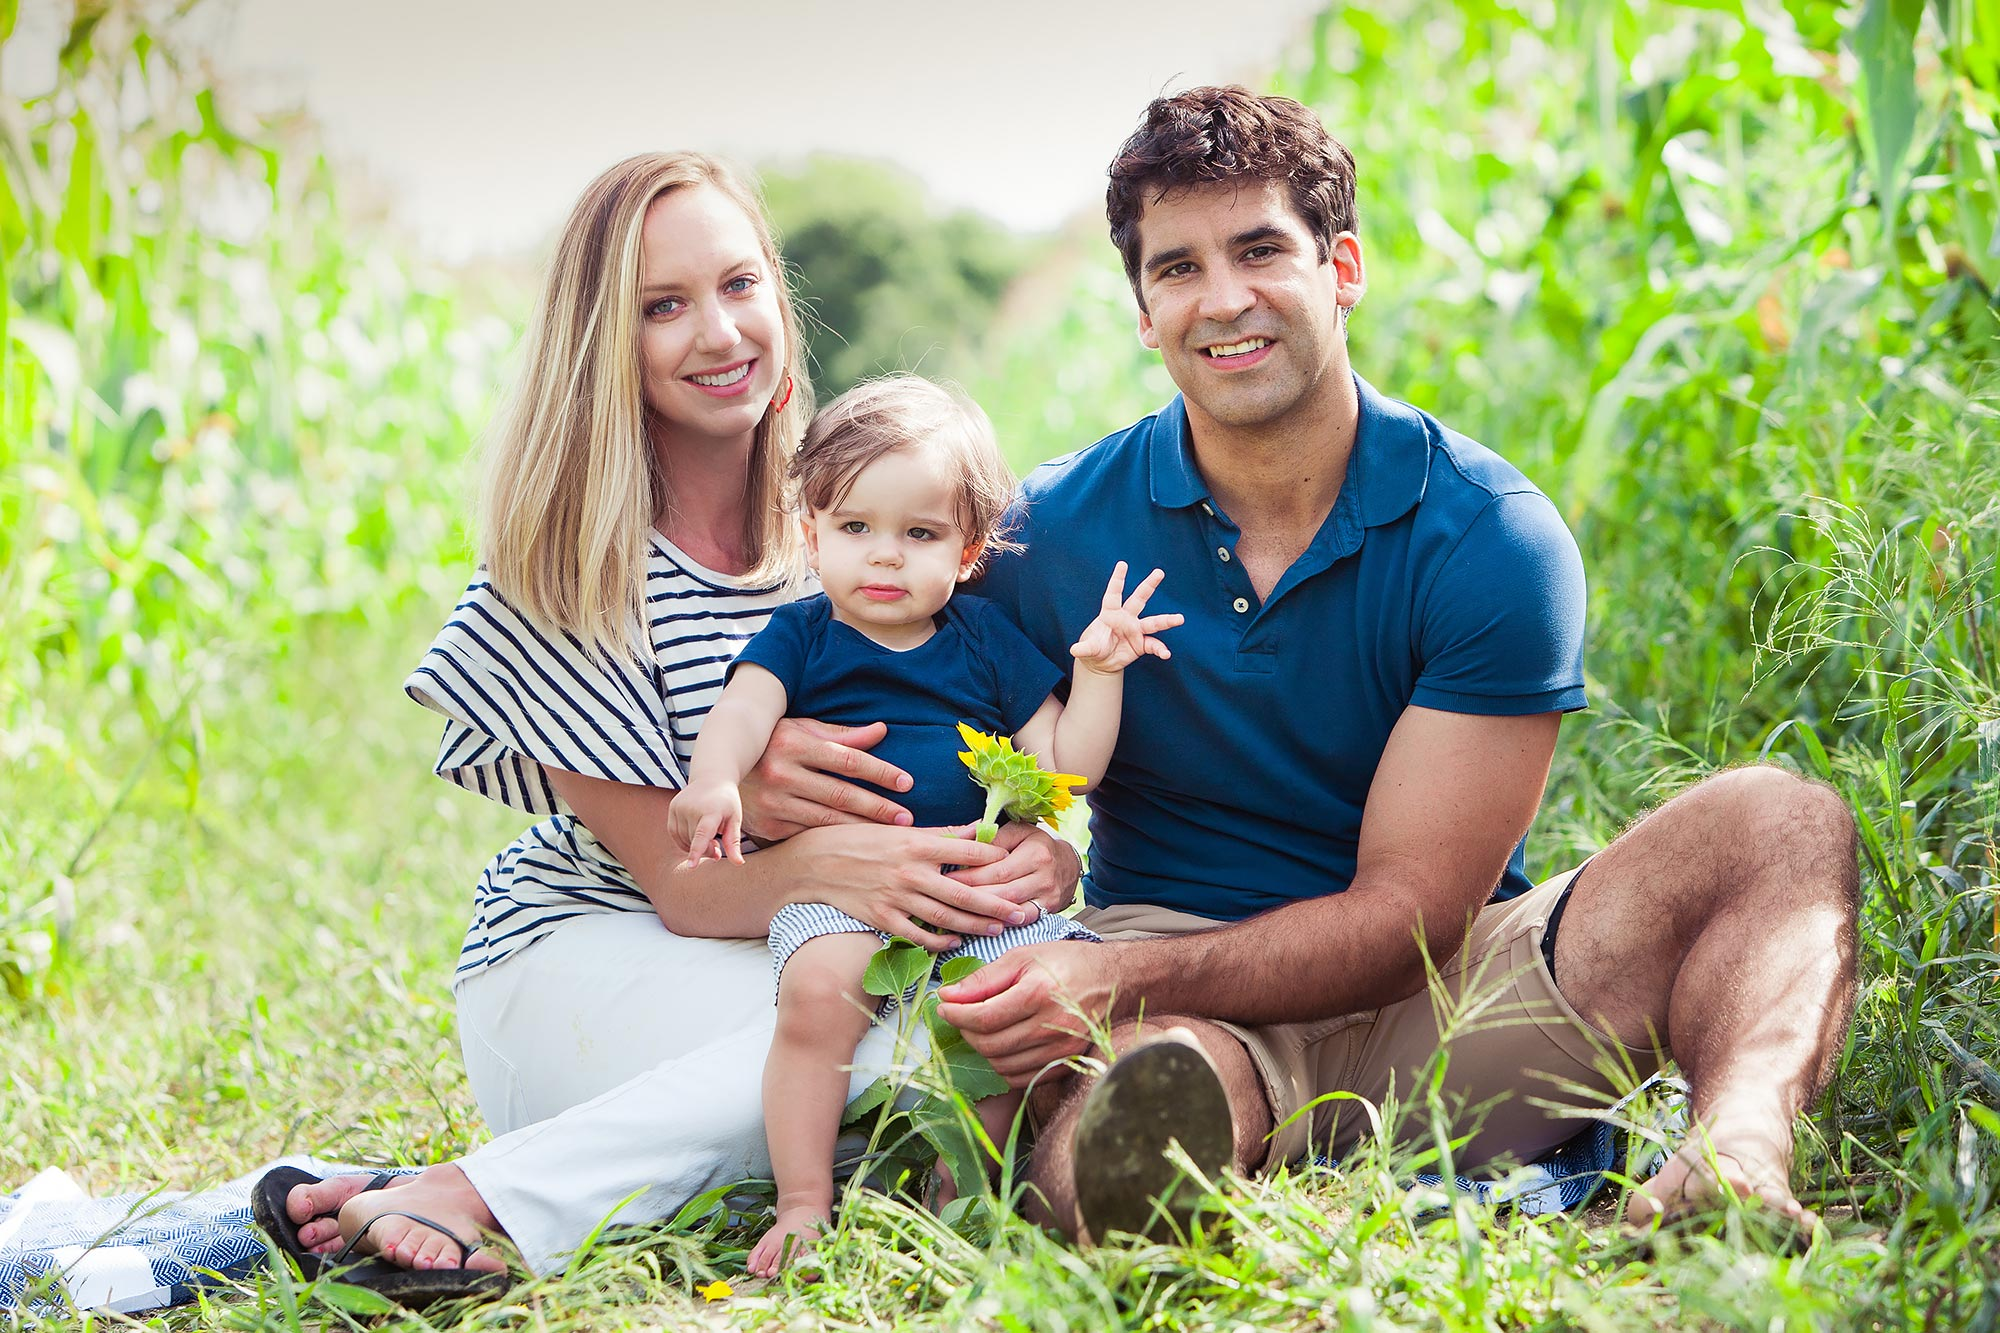 Colby Farm Sunflower Family Portraits | Stephen Grant Photography